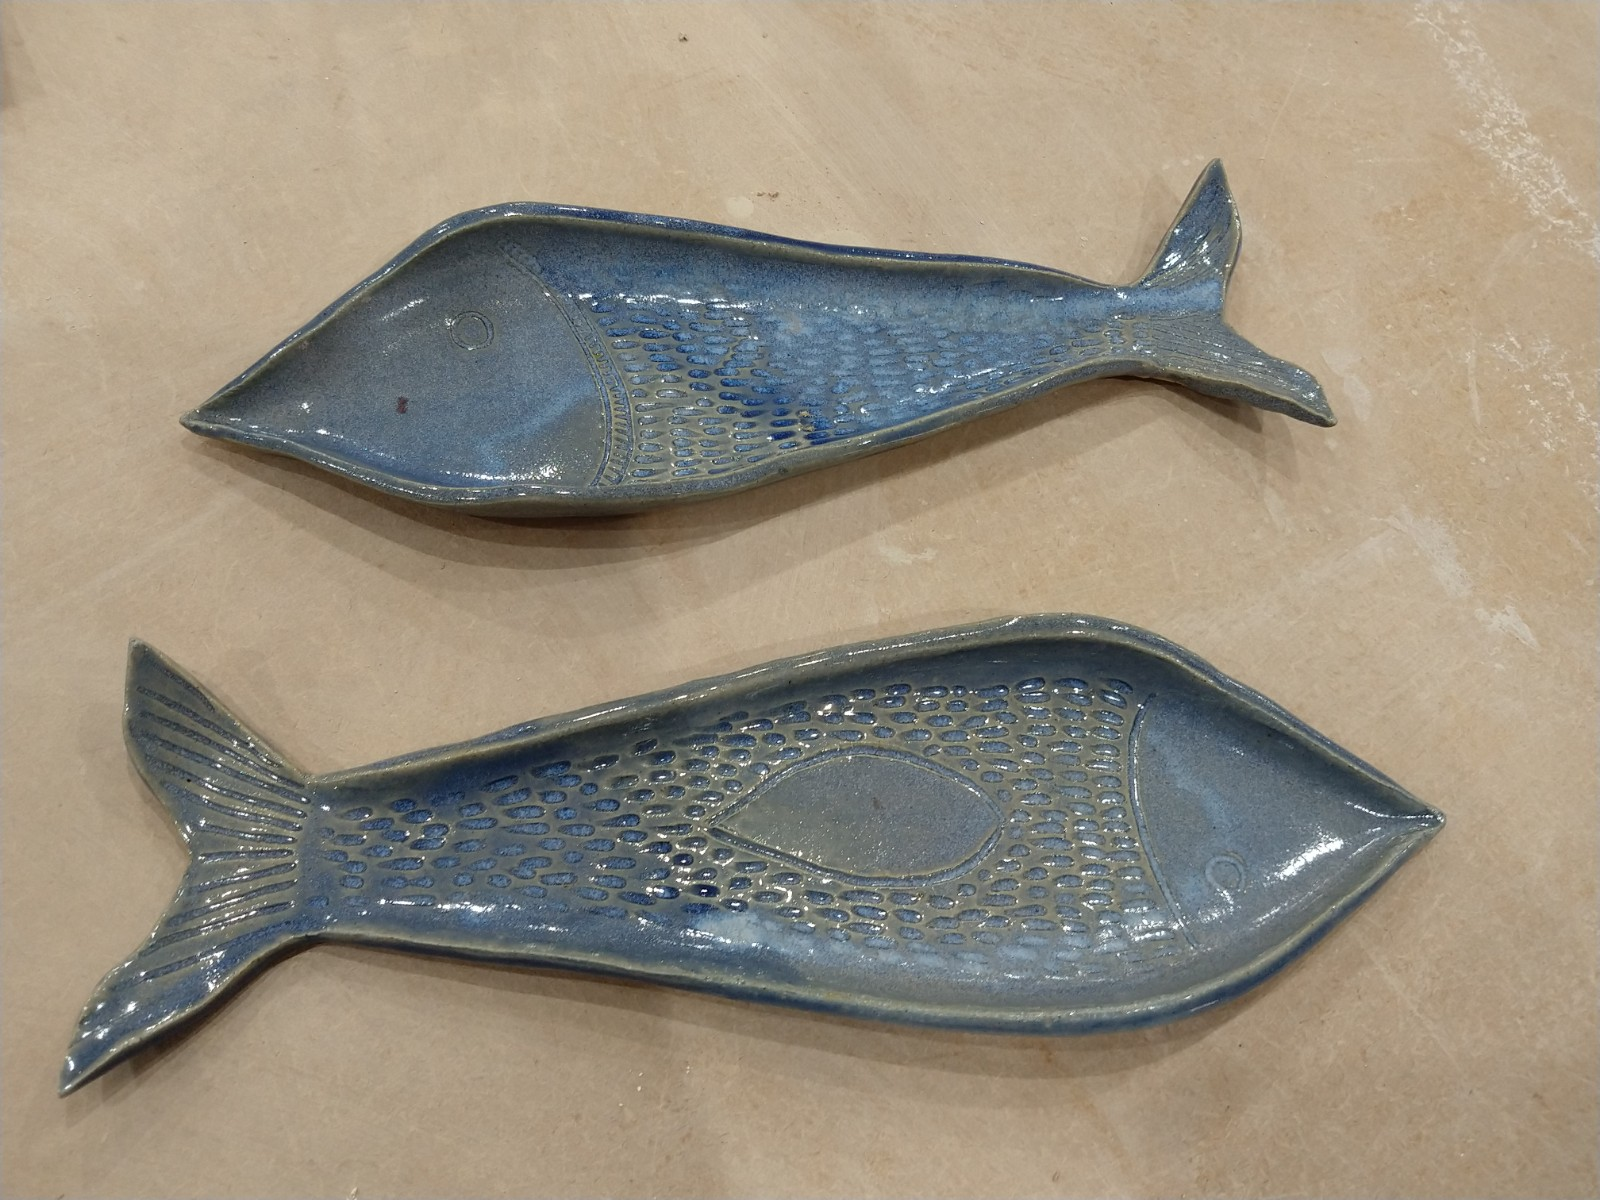 Two fish platters